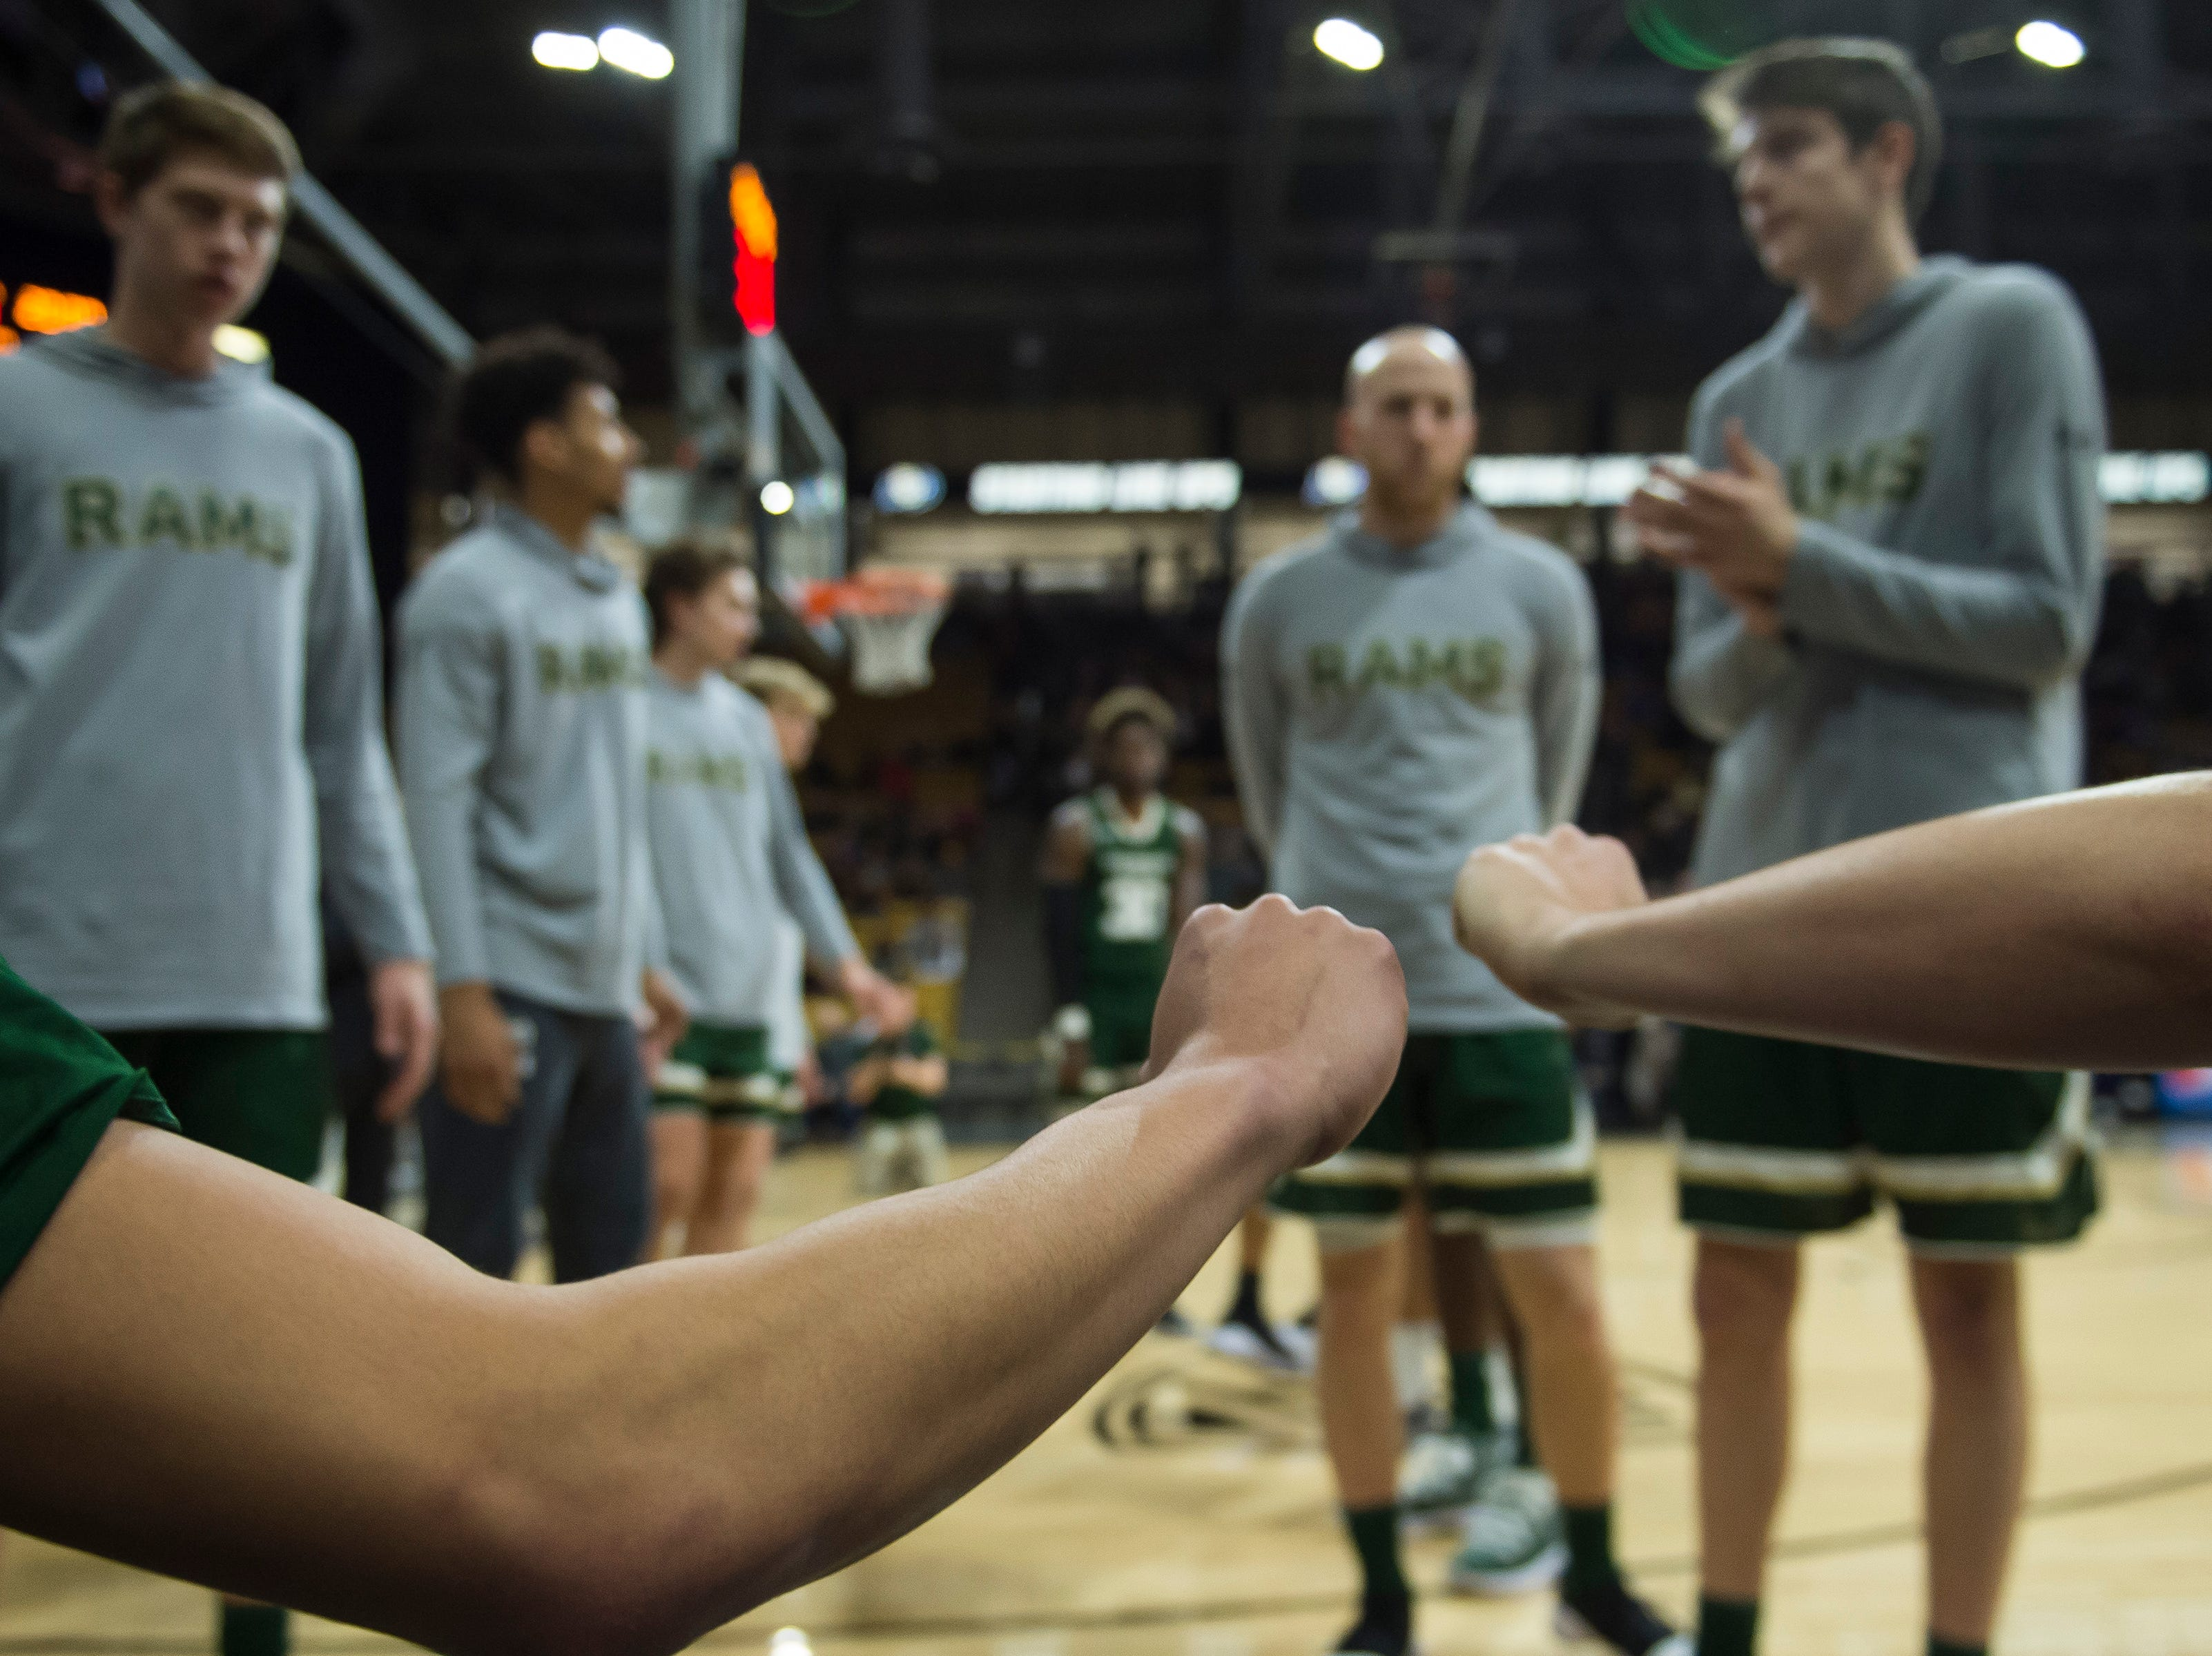 Colorado State University players are introduced before a game against the University of Colorado on Saturday, Dec. 1, 2018, at the CU Event Center in Boulder, Colo.